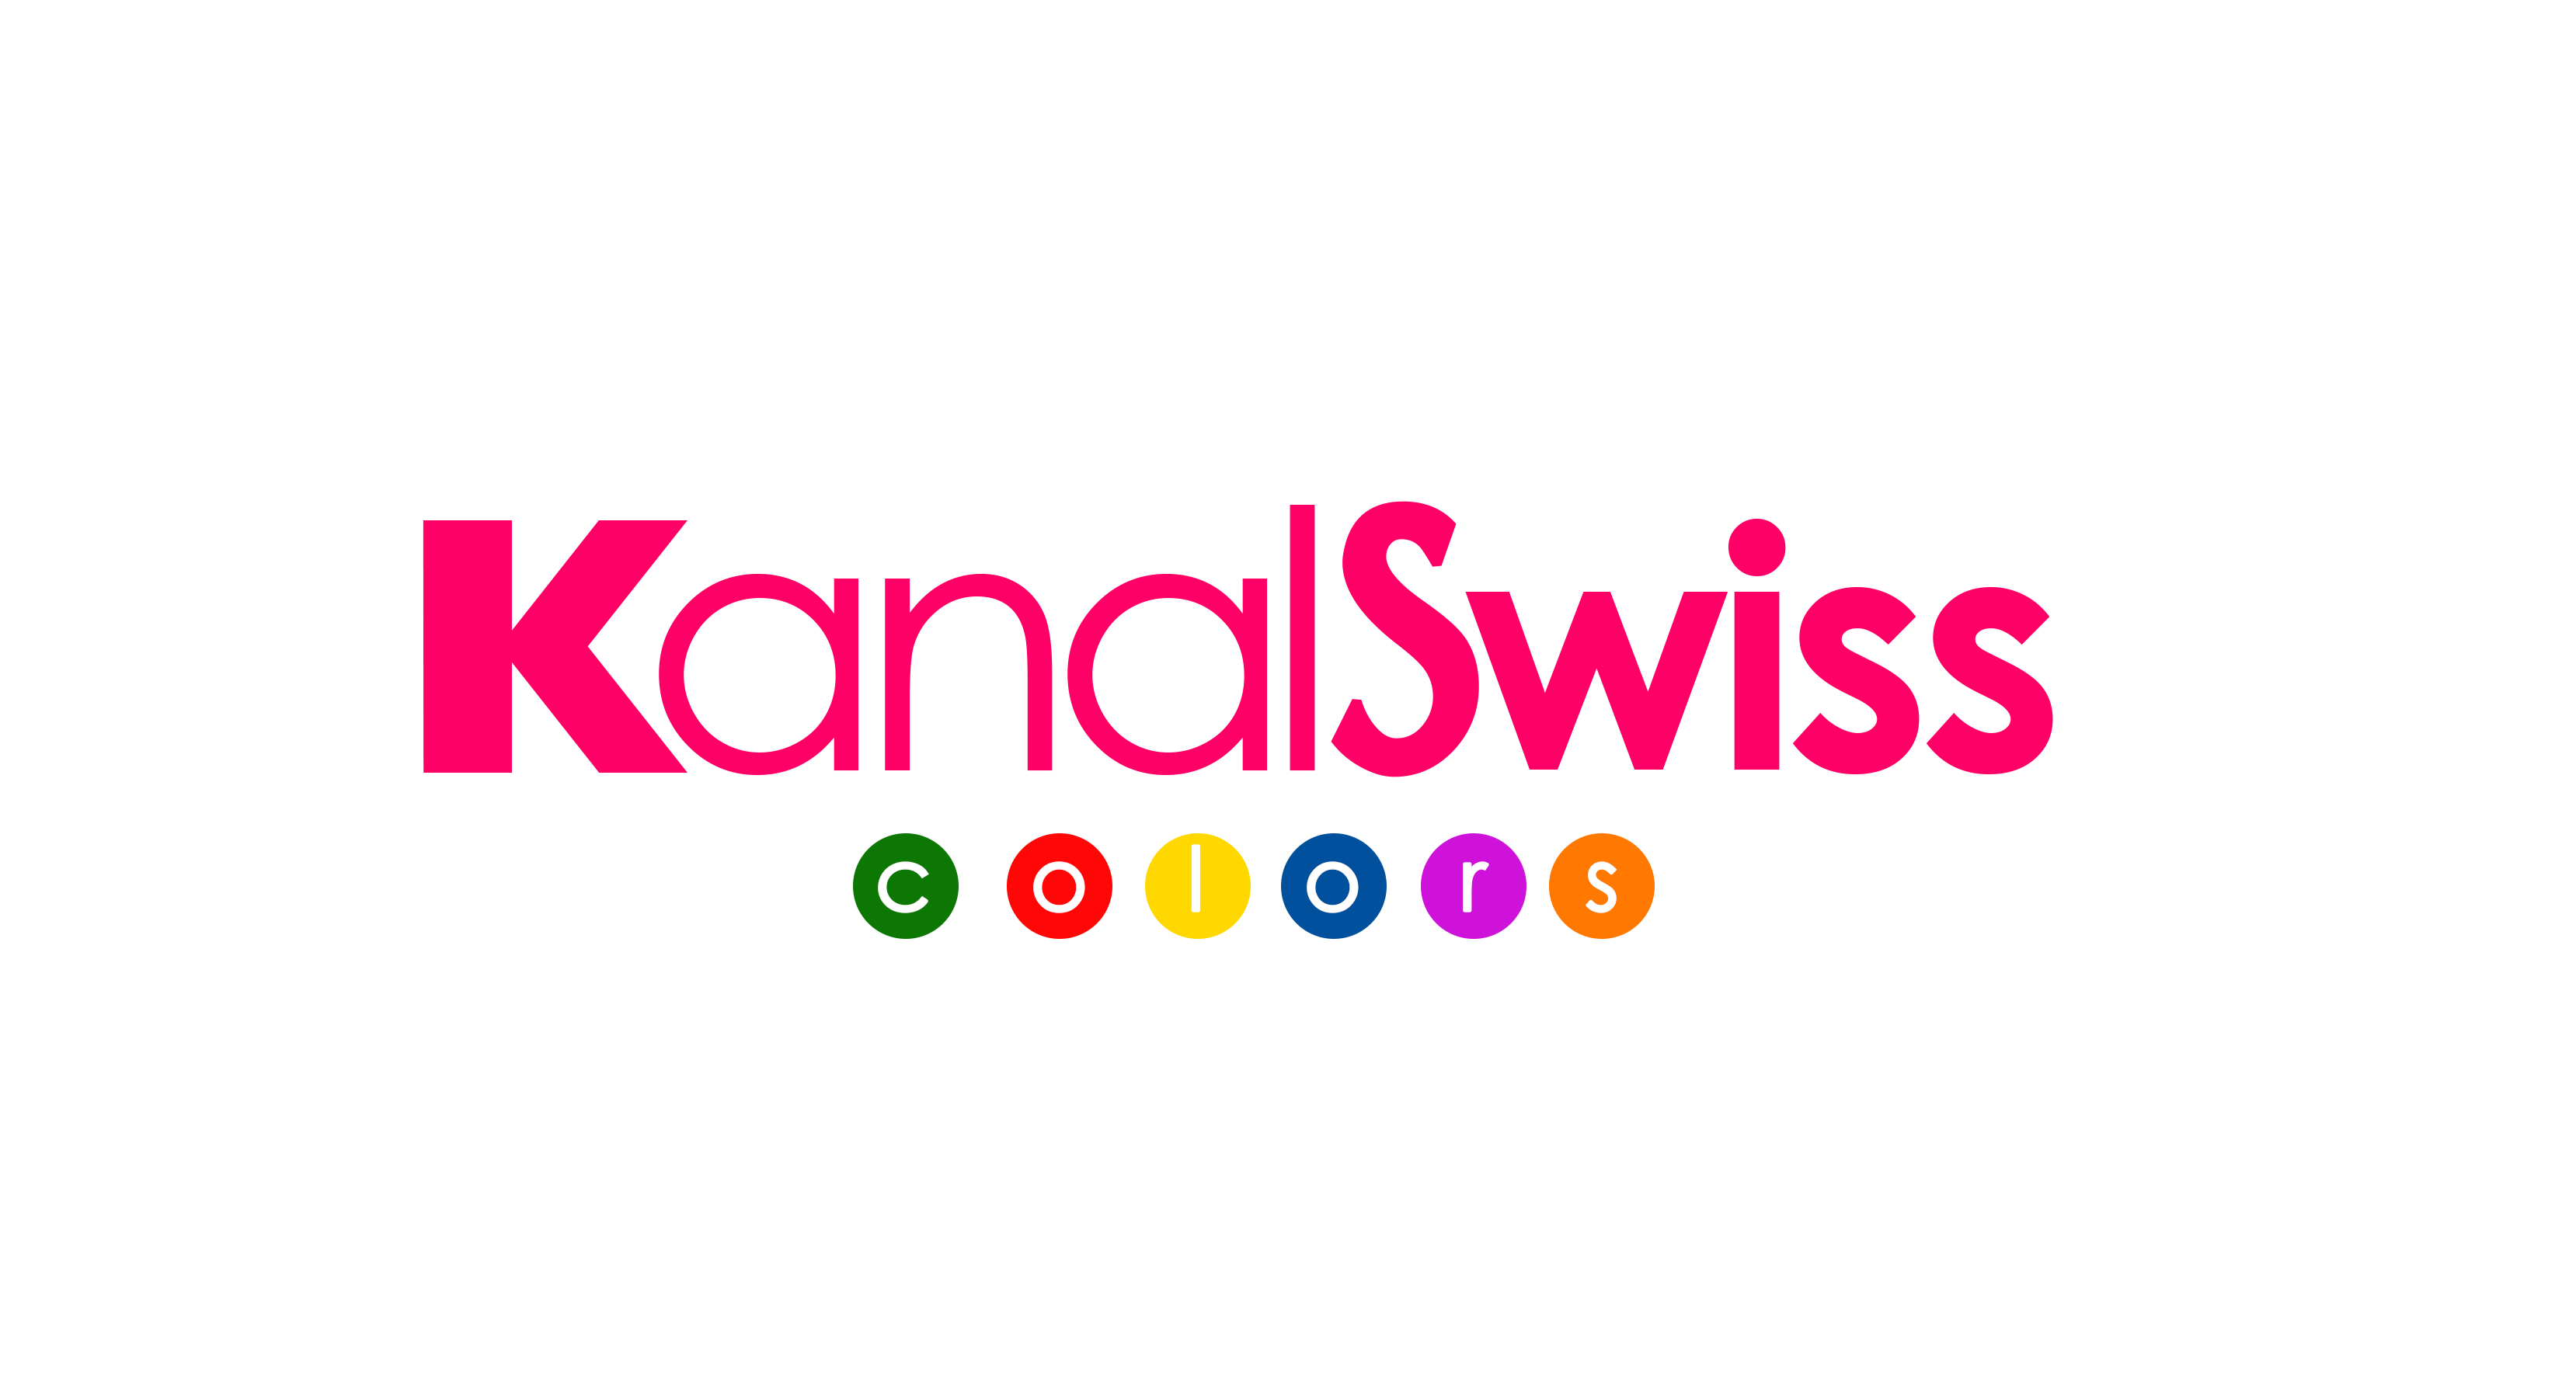 KanalSwiss colors